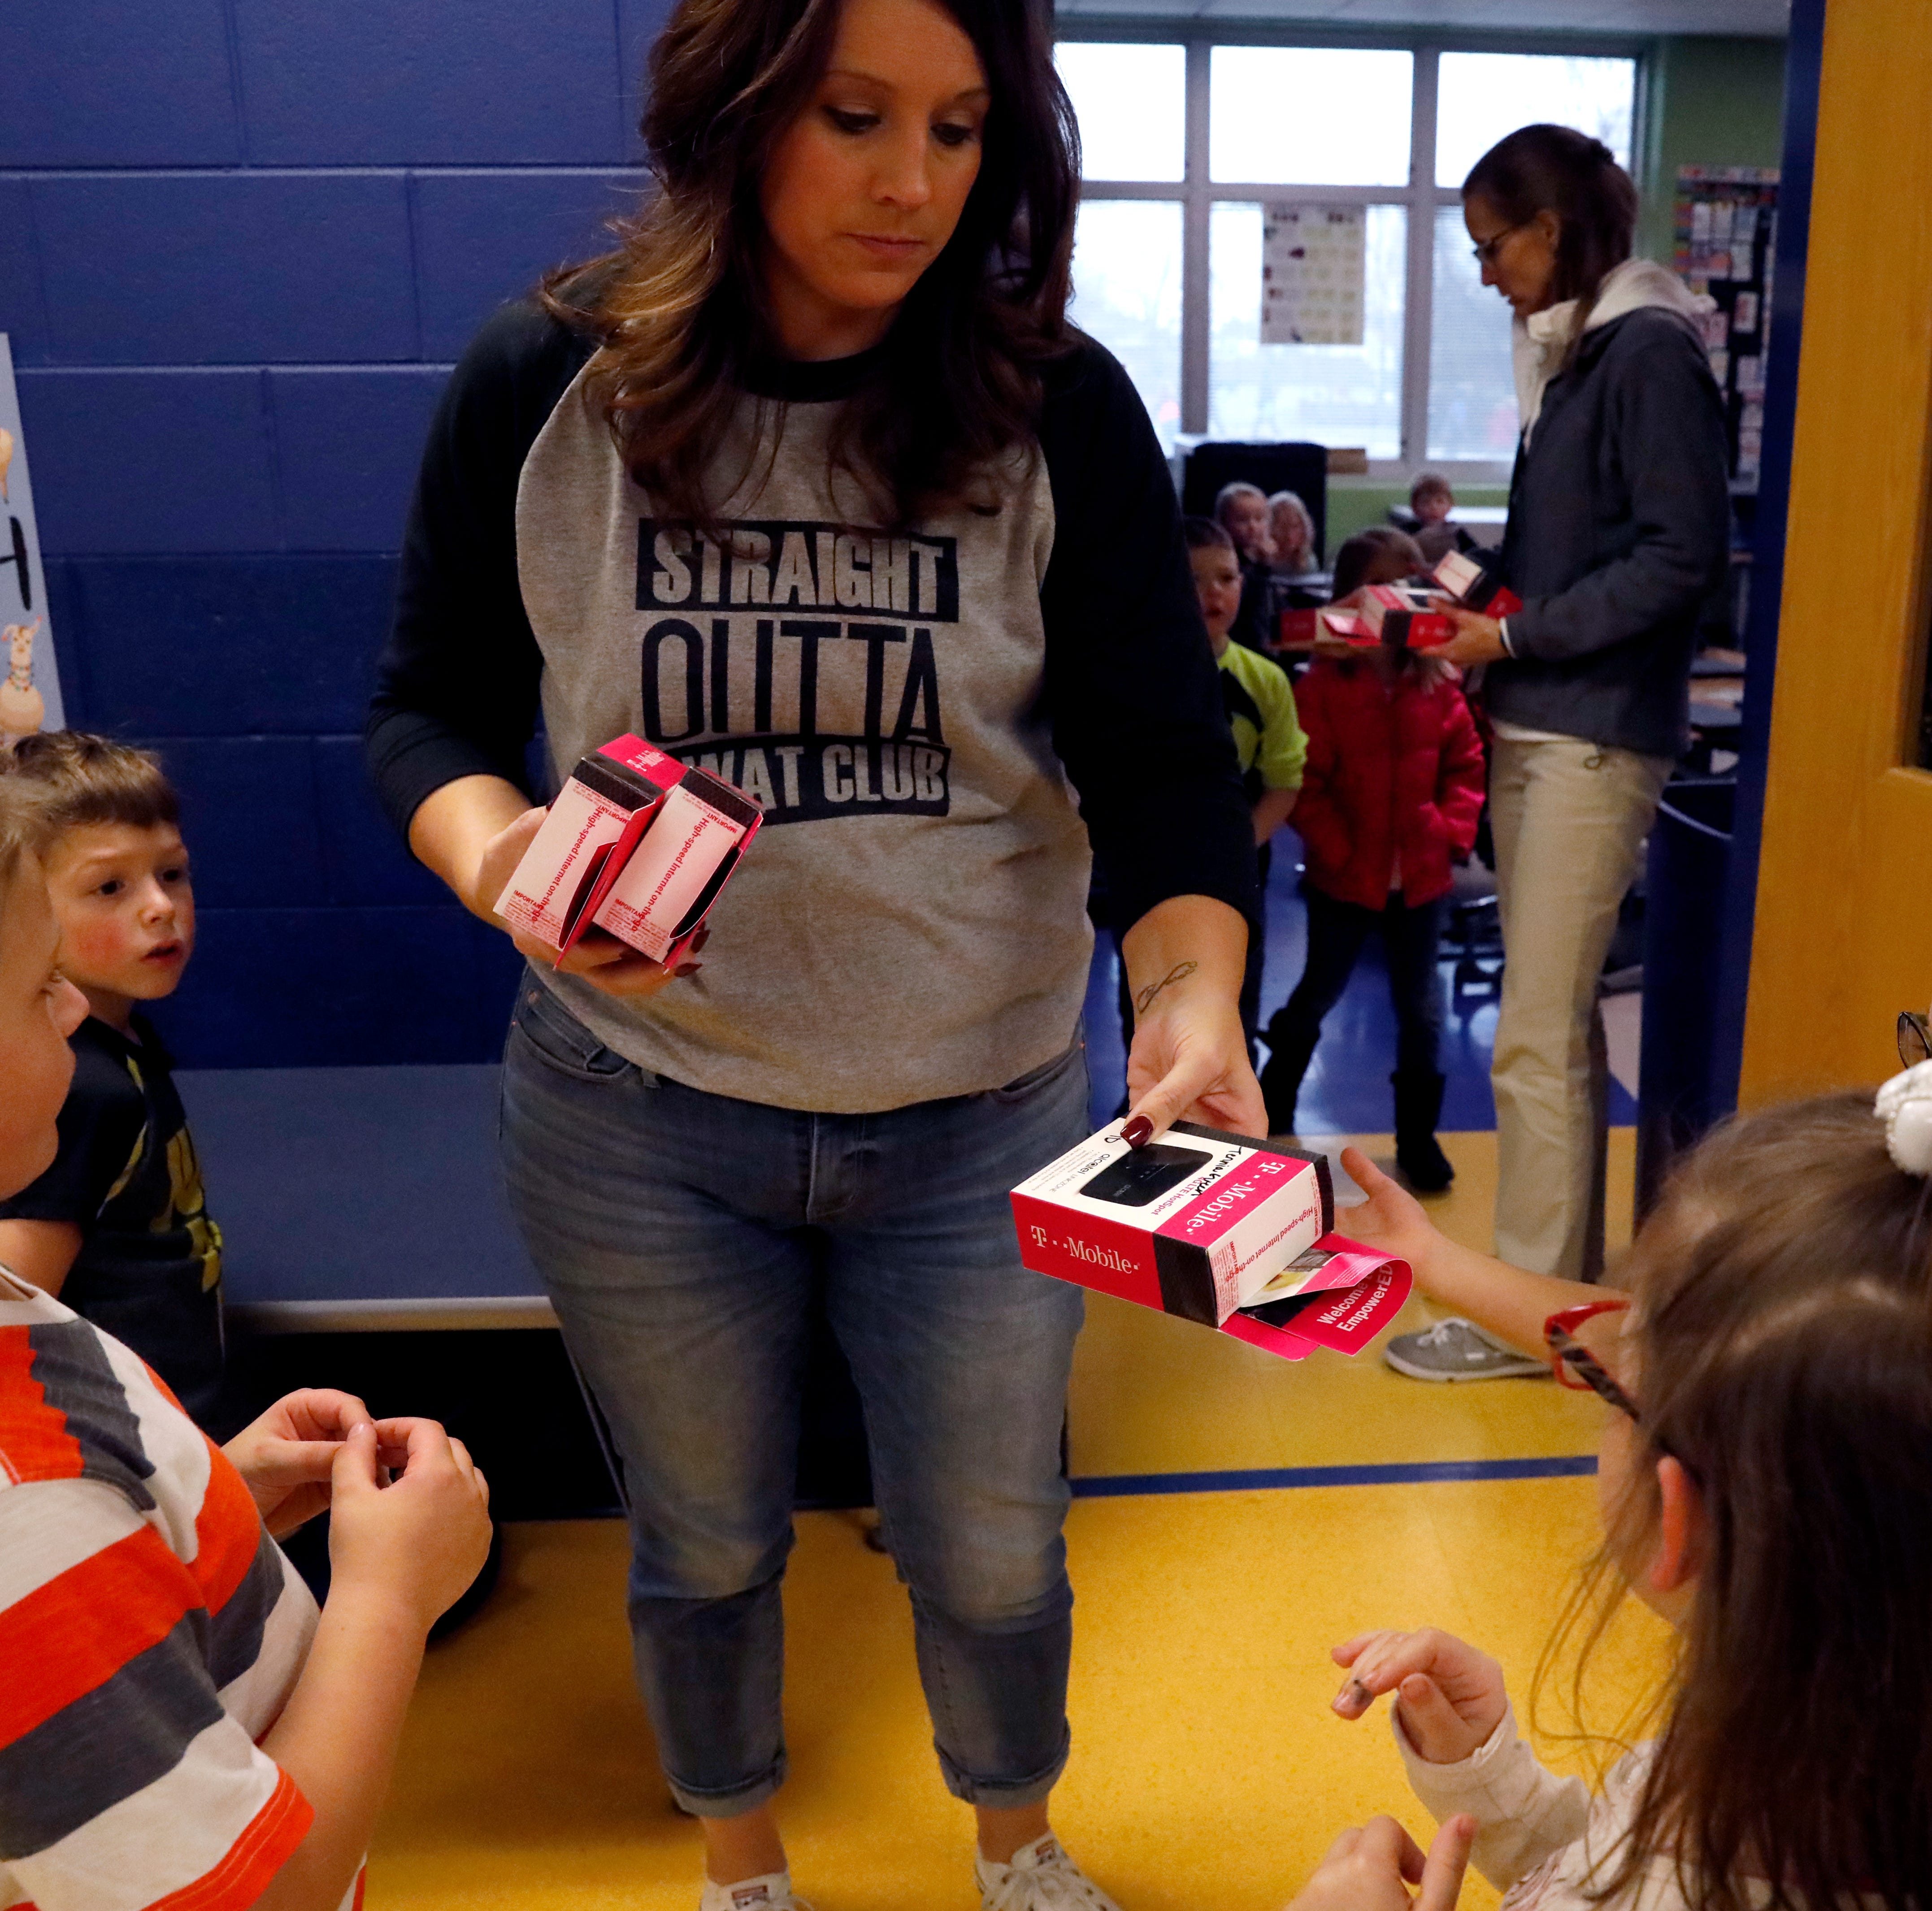 JoLena Sark, a first grade student at Gorsuch West Elementary hands out mobile Wi-Fi hotspot devices to some of her students Tuesday afternoon, Nov. 13, 2018, in Lancaster. A grant from T-Mobile allowed the district to distribute the devices to every high school student and to students at Gosuch West and Tallmadge Elementary who's parents agreed to receive the devices. The two year grant allows those with the device to have free access to the internet.